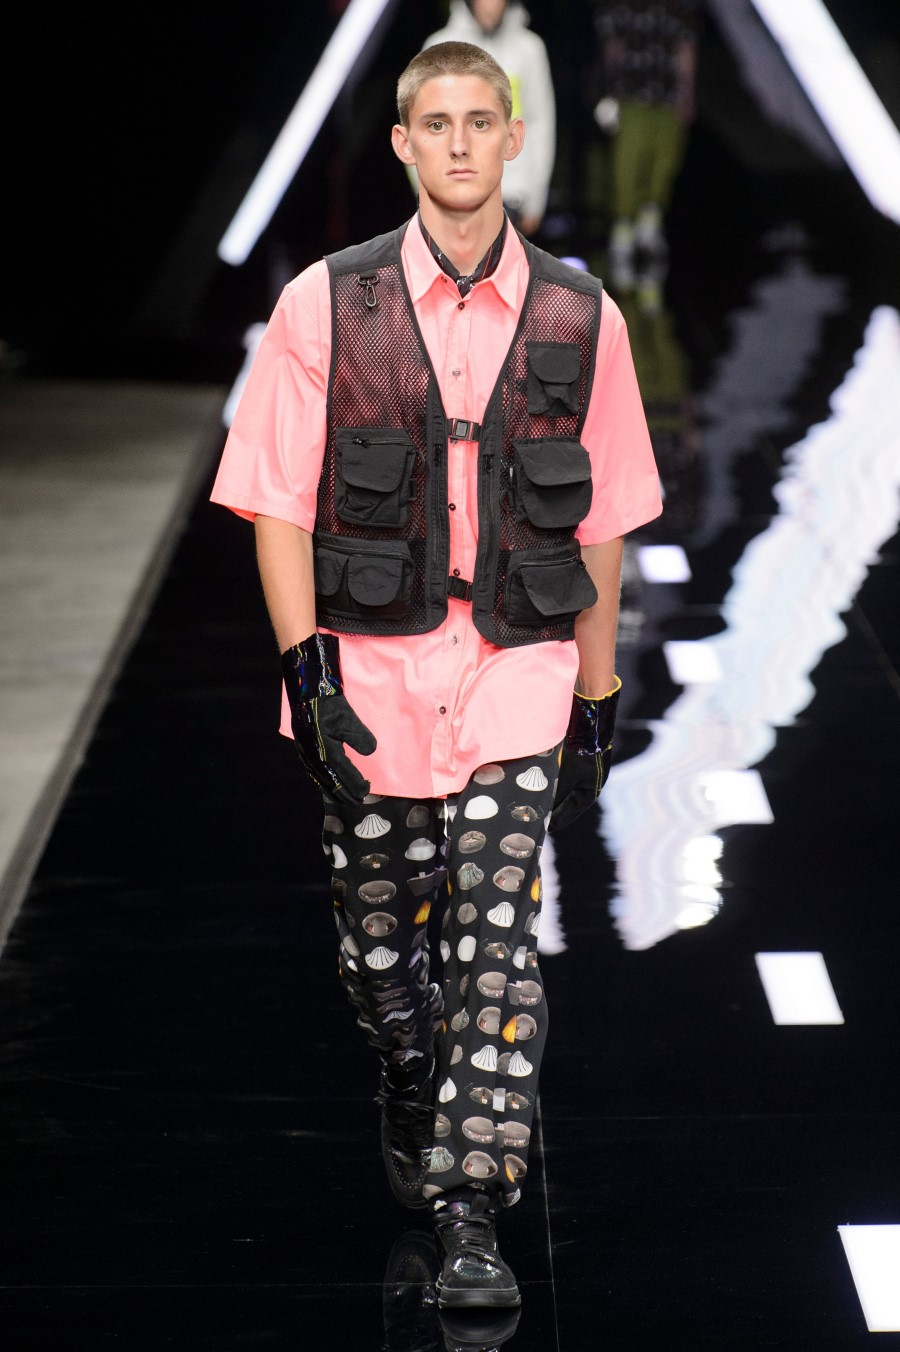 Marcelo Burlon County of Milan Printemps/Été 2019 - Milan fashion week